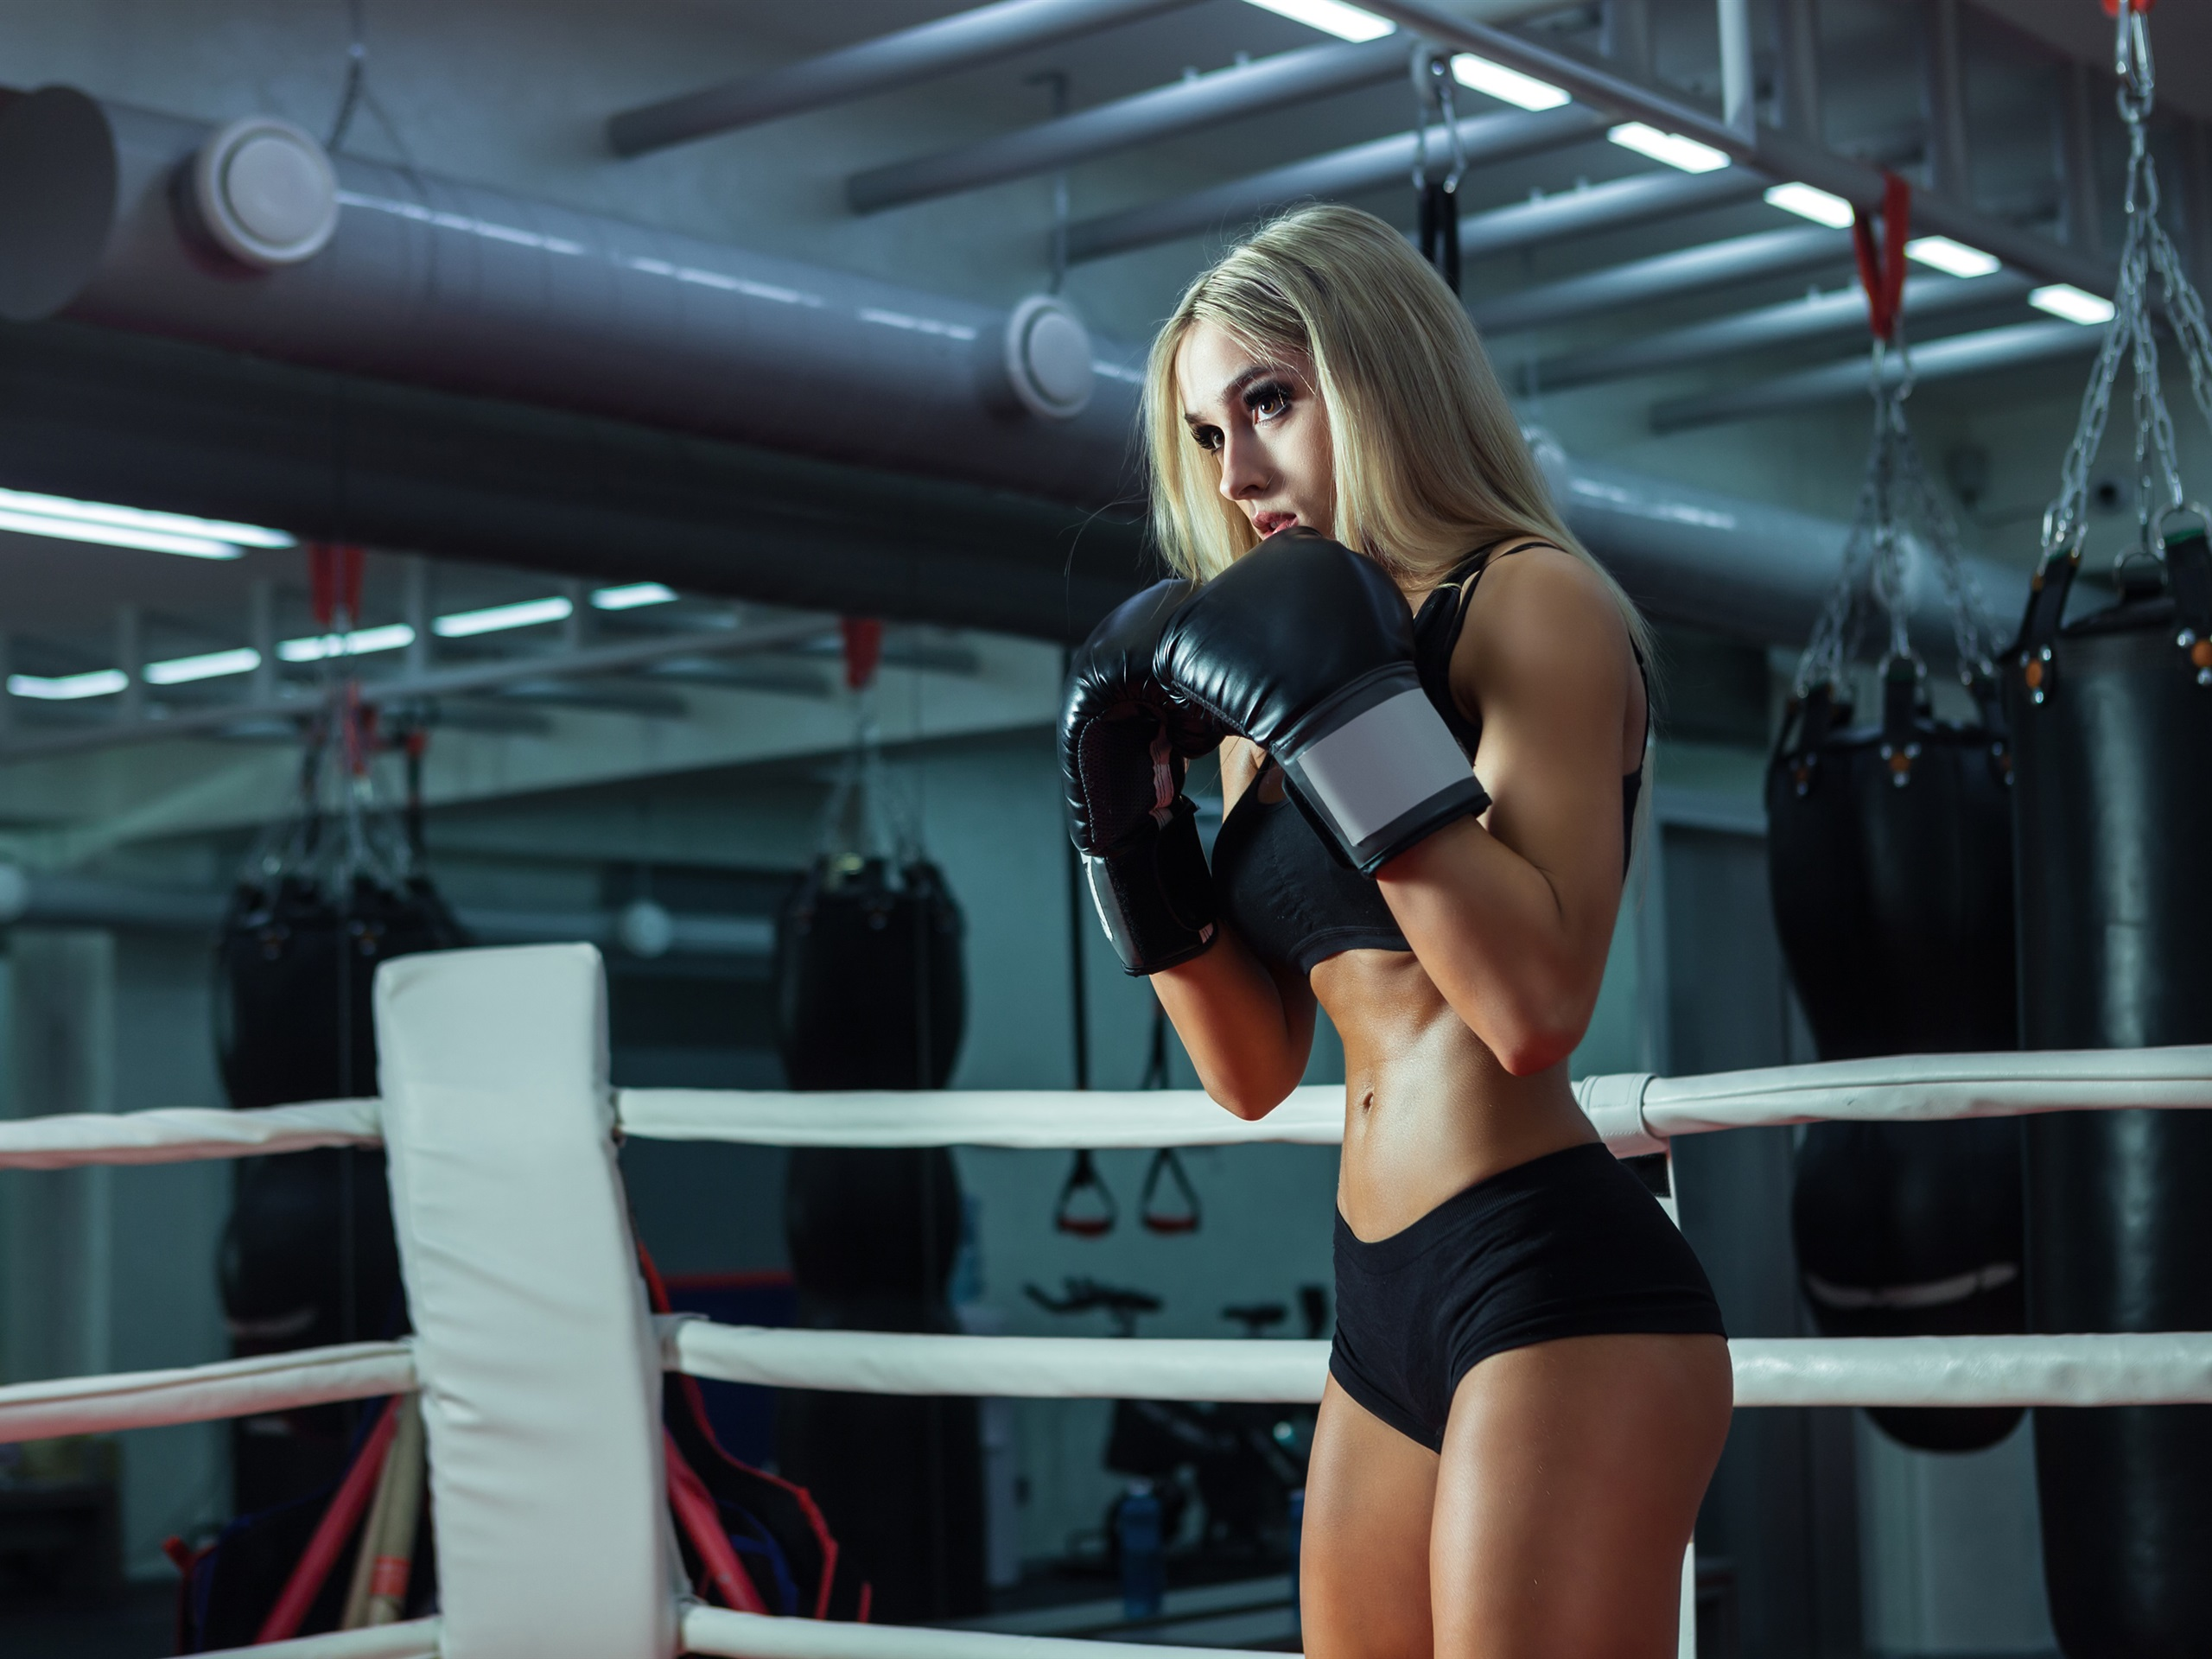 Official music video with girls boxing, xxx dana plato